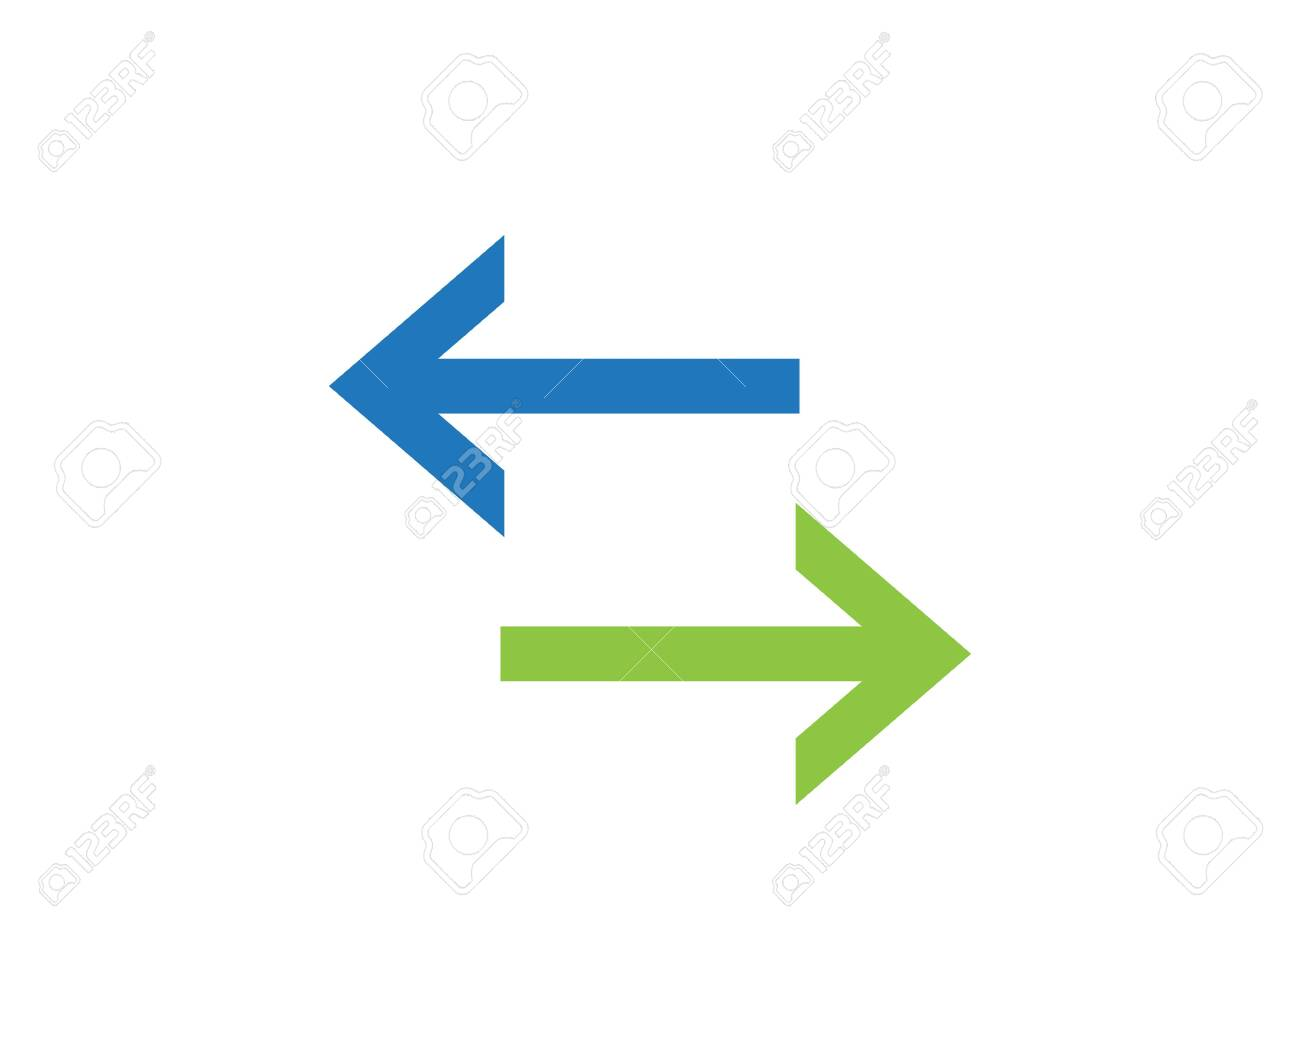 Symbol Of Bidirectional Arrows Data Transfer Vector Royalty Free Cliparts Vectors And Stock Illustration Image 128974744